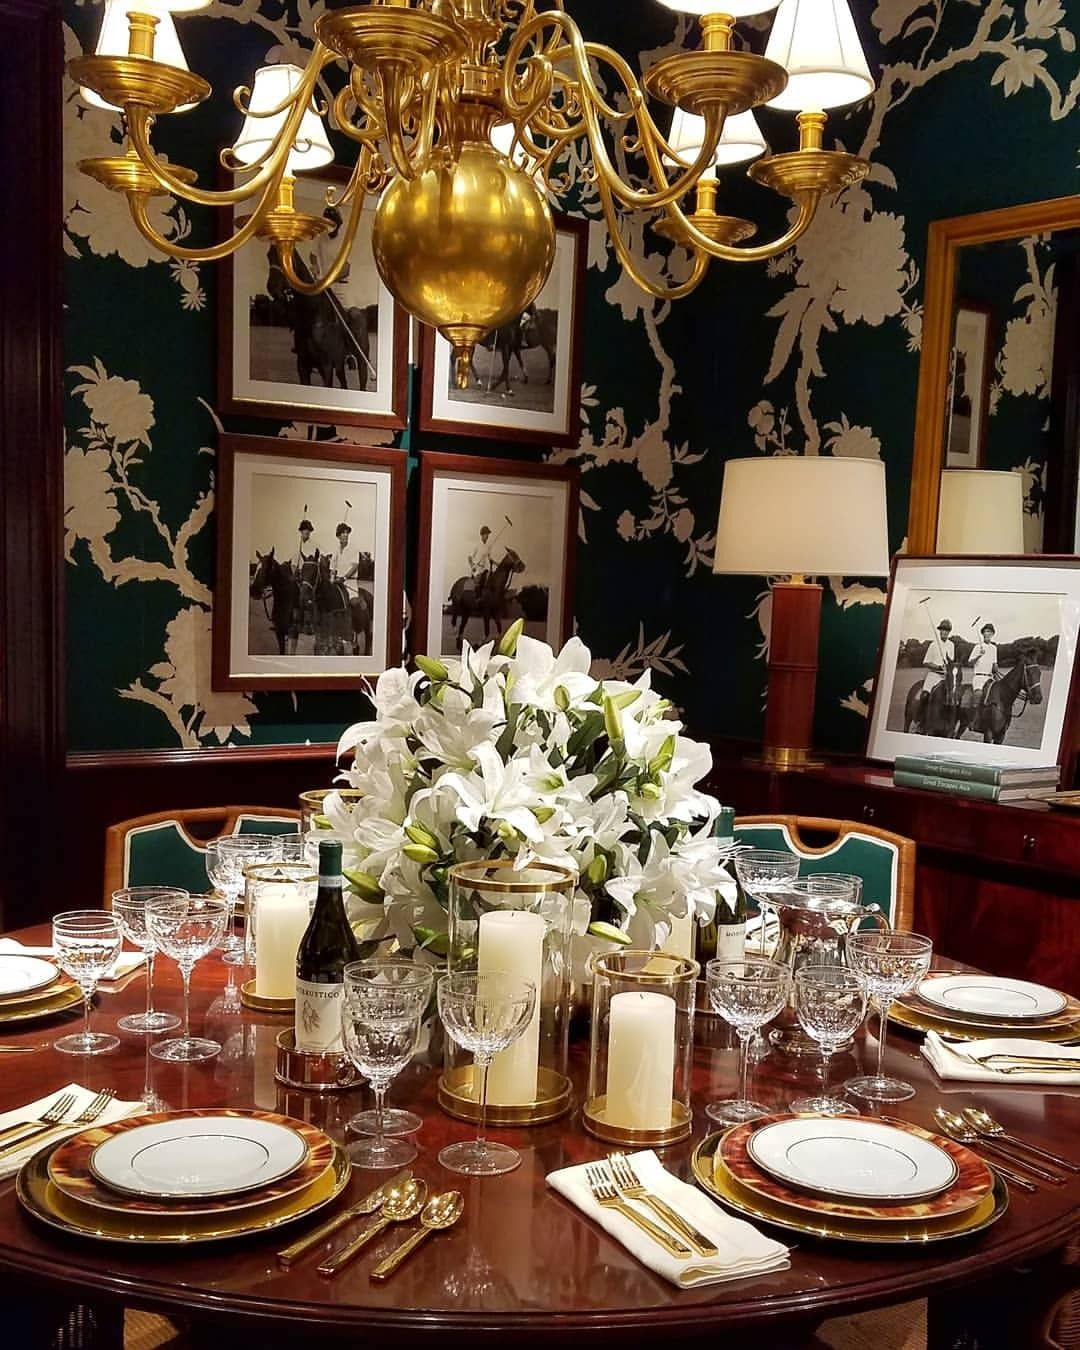 Polo Play In This Regal Dining Room With Images Dining Room